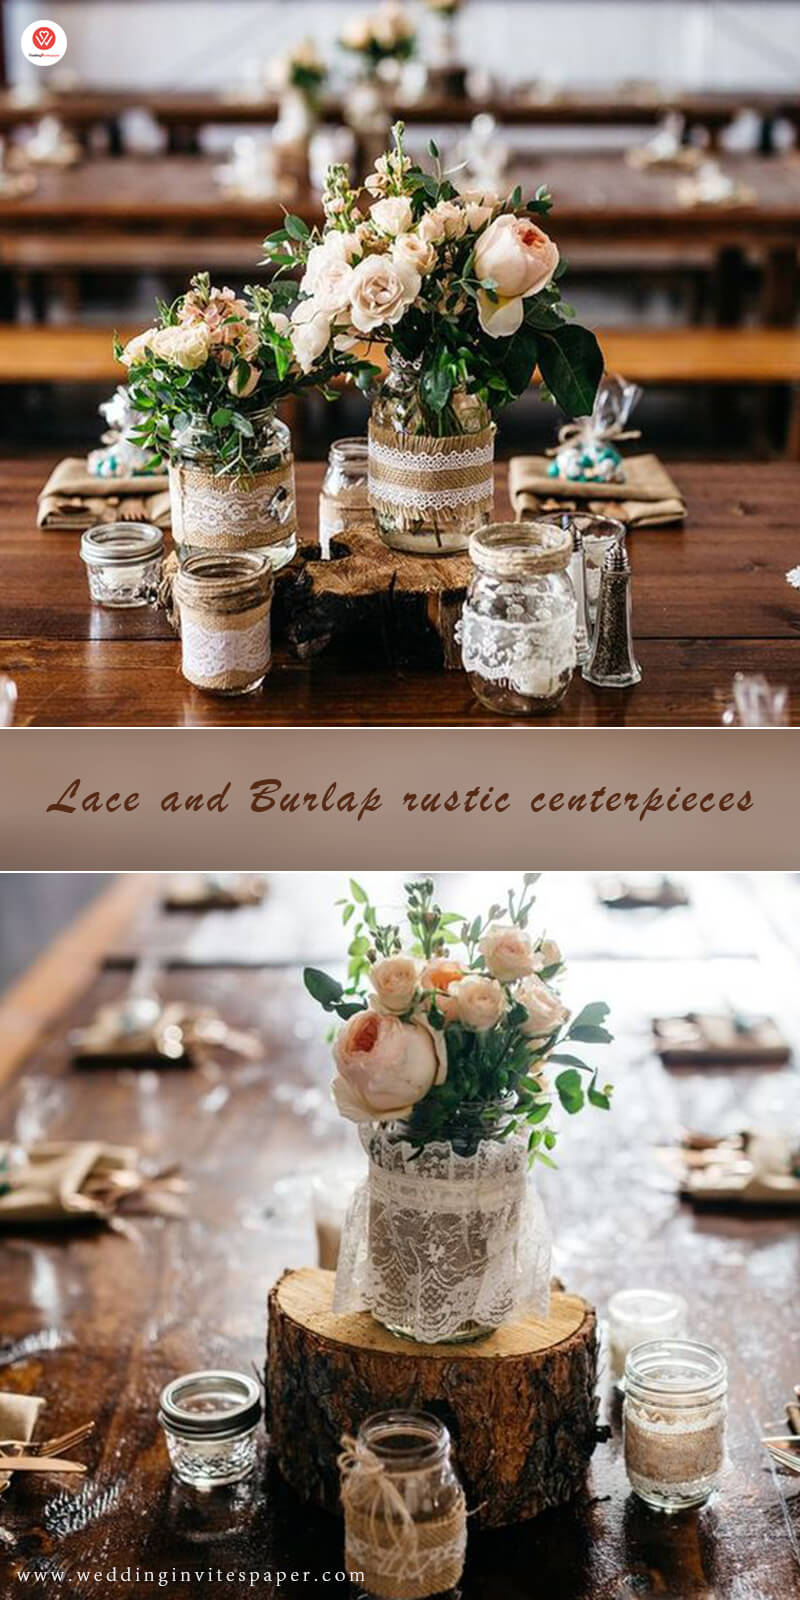 2 Lace and Burlap rustic centerpieces.jpg